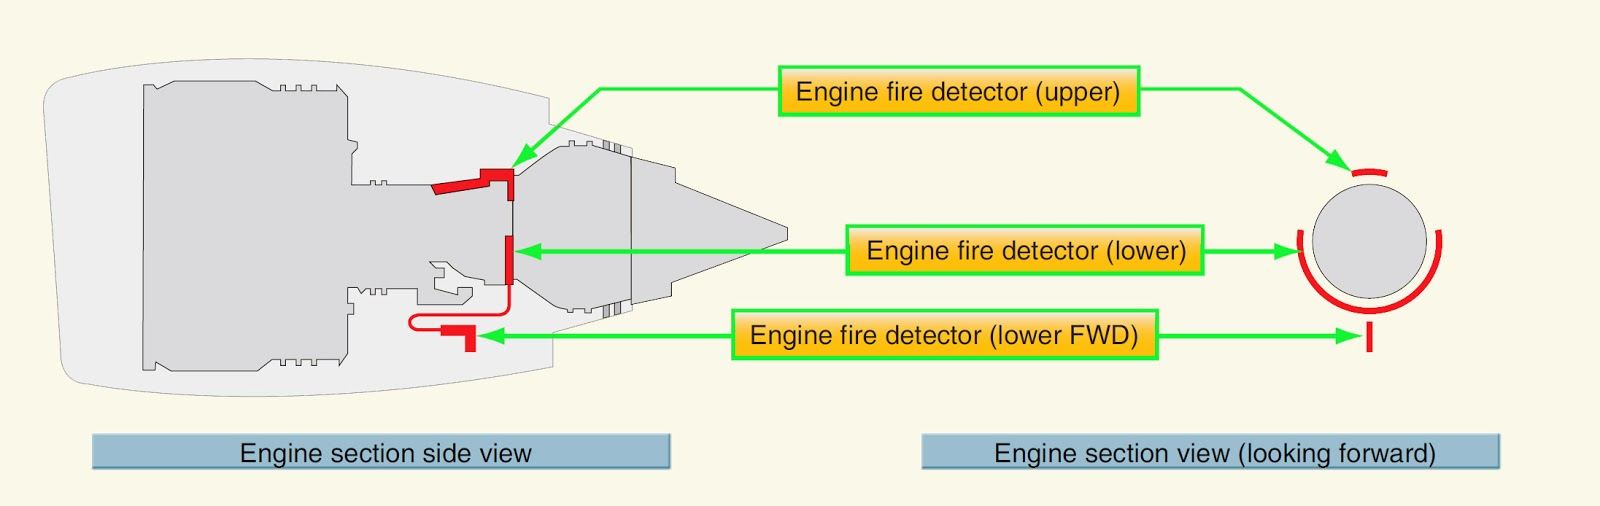 Aeronautical Guide Engine Fire Detection Systems And Zones Turbofan Schematic Large